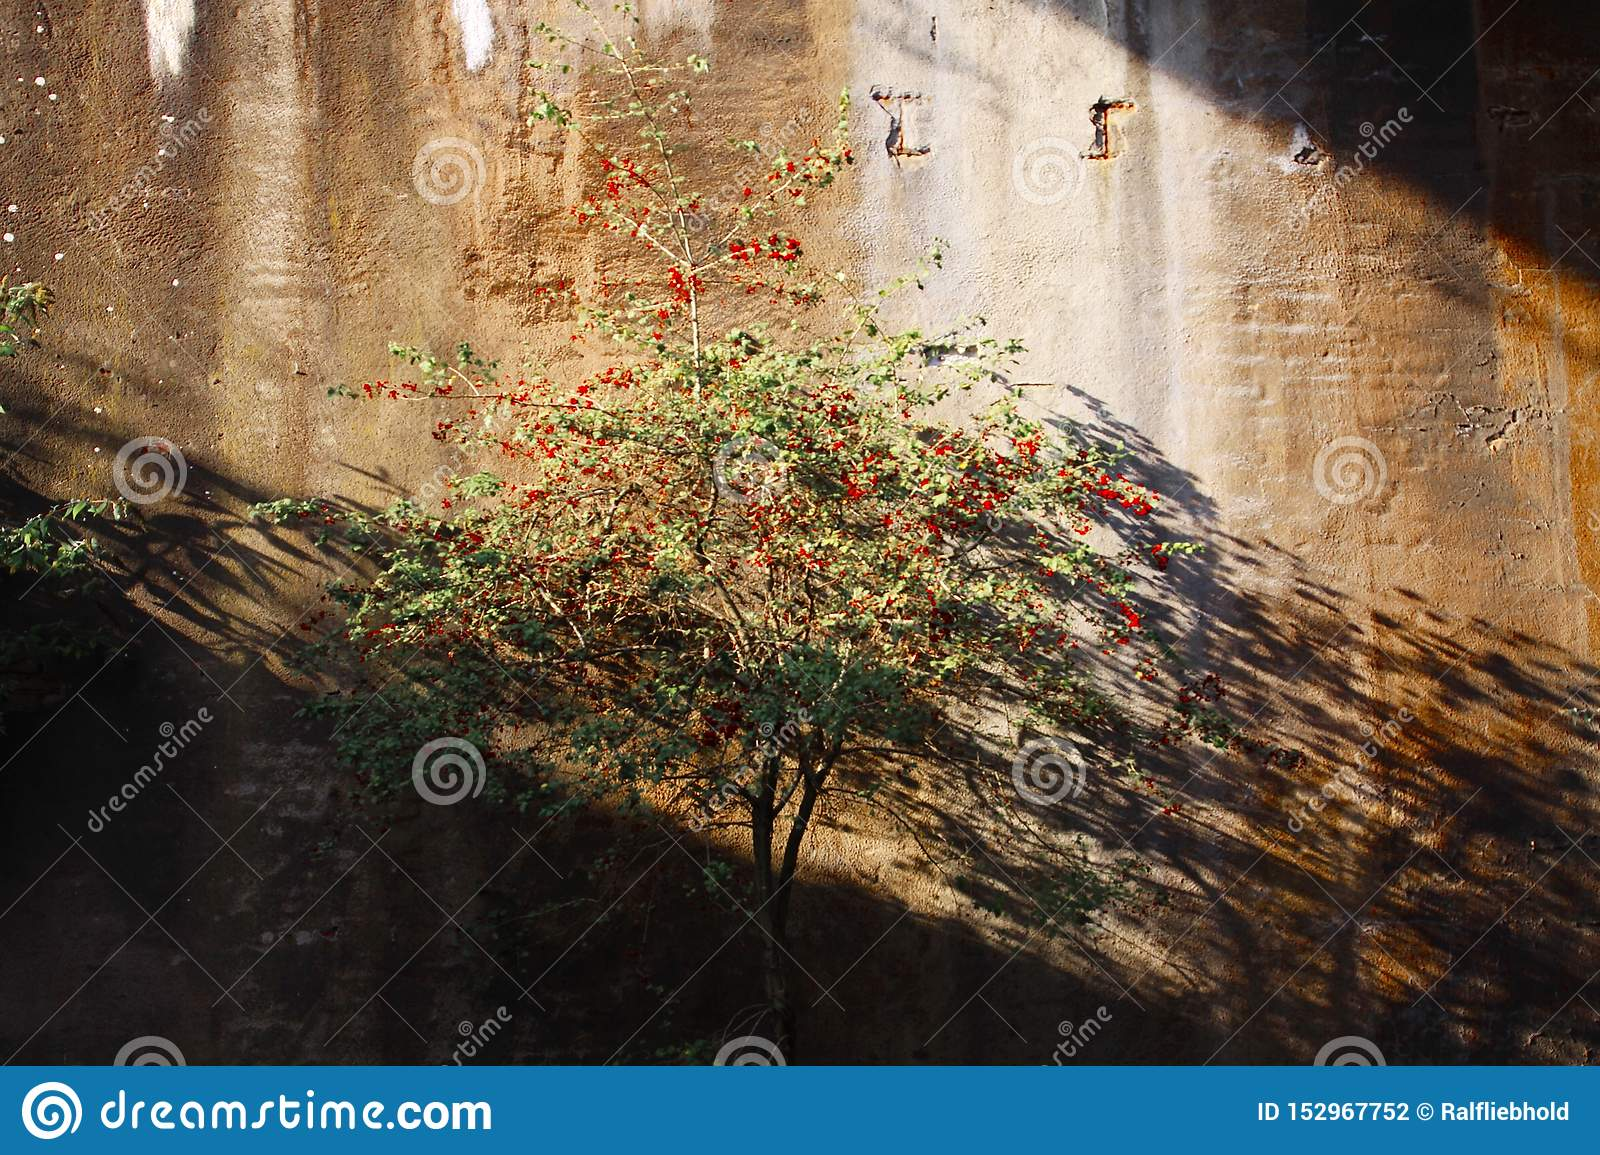 Landschaftspark Duisburg, Germany: Isolated tree with red berries in an abandoned tunnel shining bright in sunlight and casting